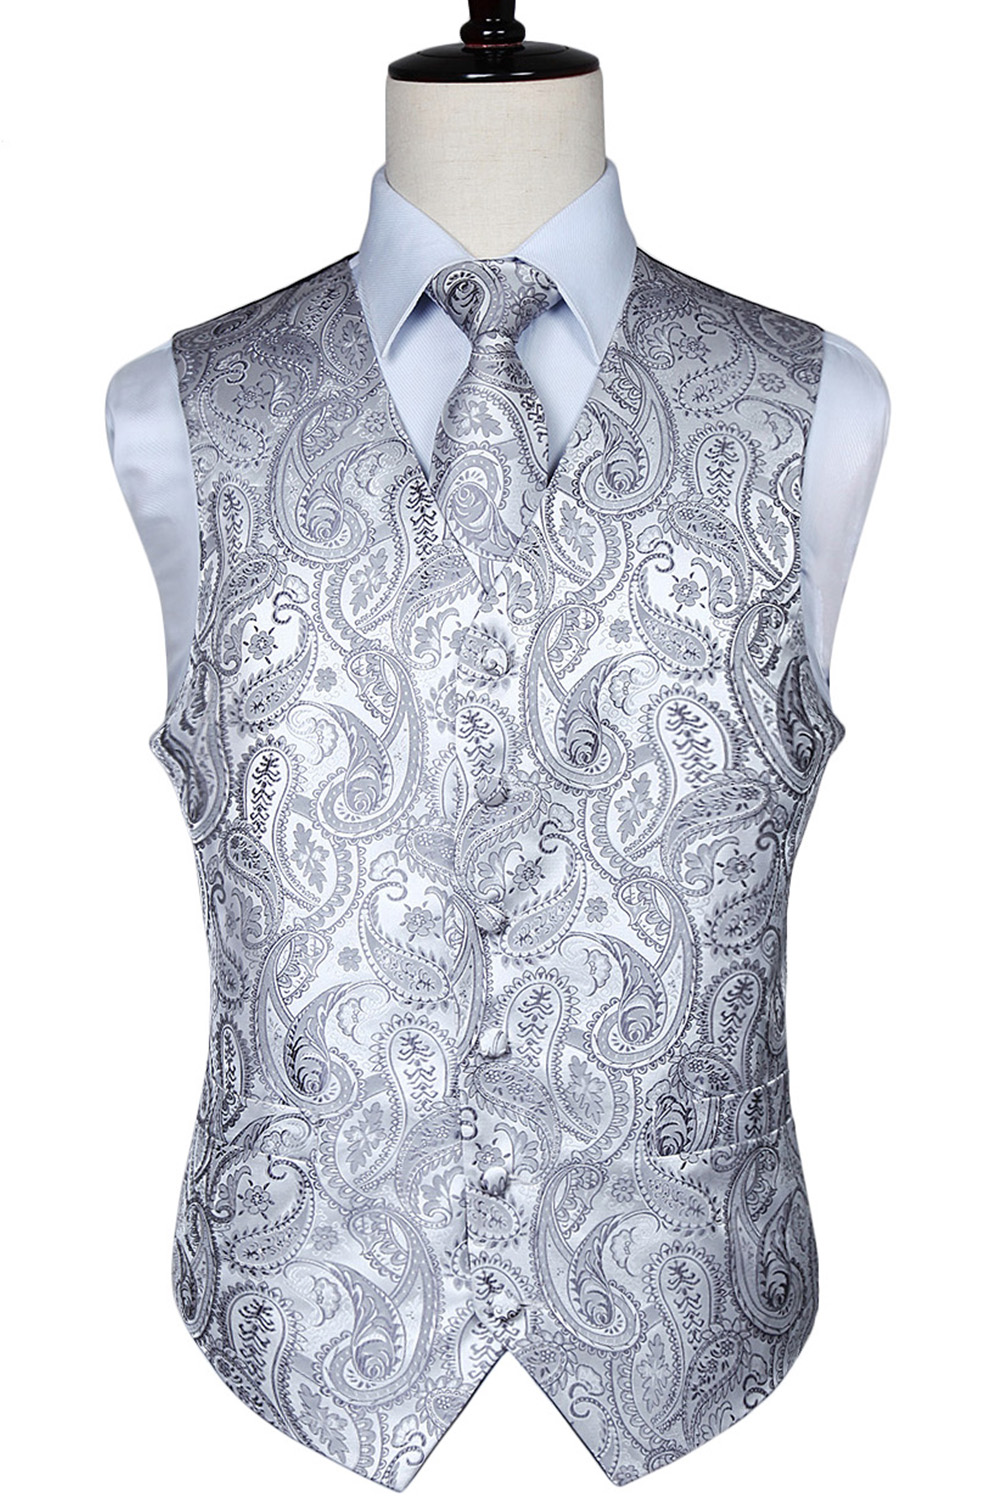 Men's Classic Paisley Jacquard Waistcoat Vest Handkerchief Party wedding Tie vest Suit  Pocket Square Set(China)